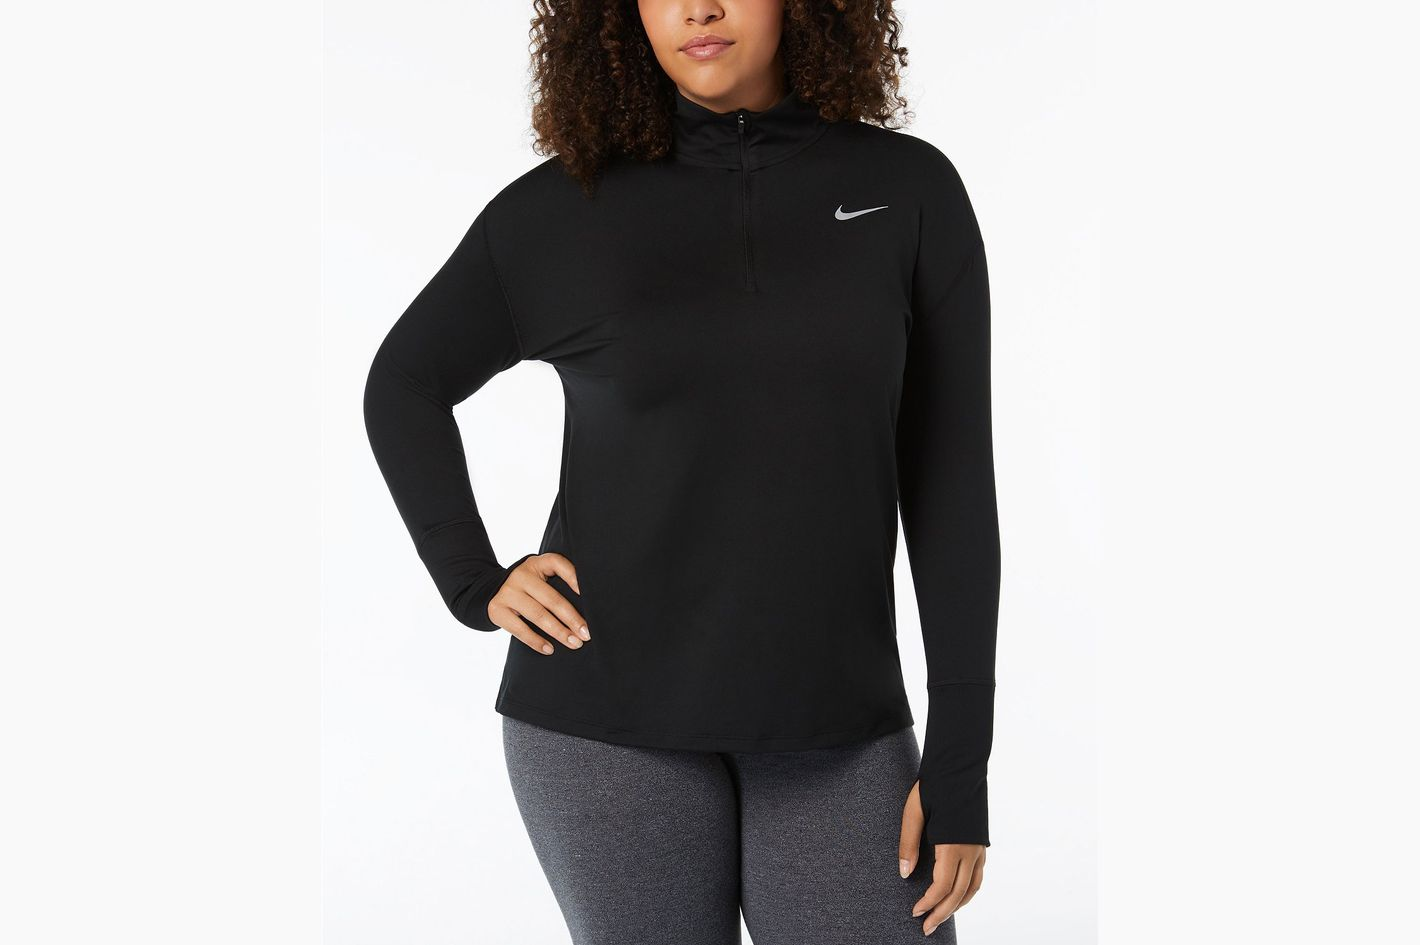 938ea2085dd1 Nike Element Plus Size Running Top